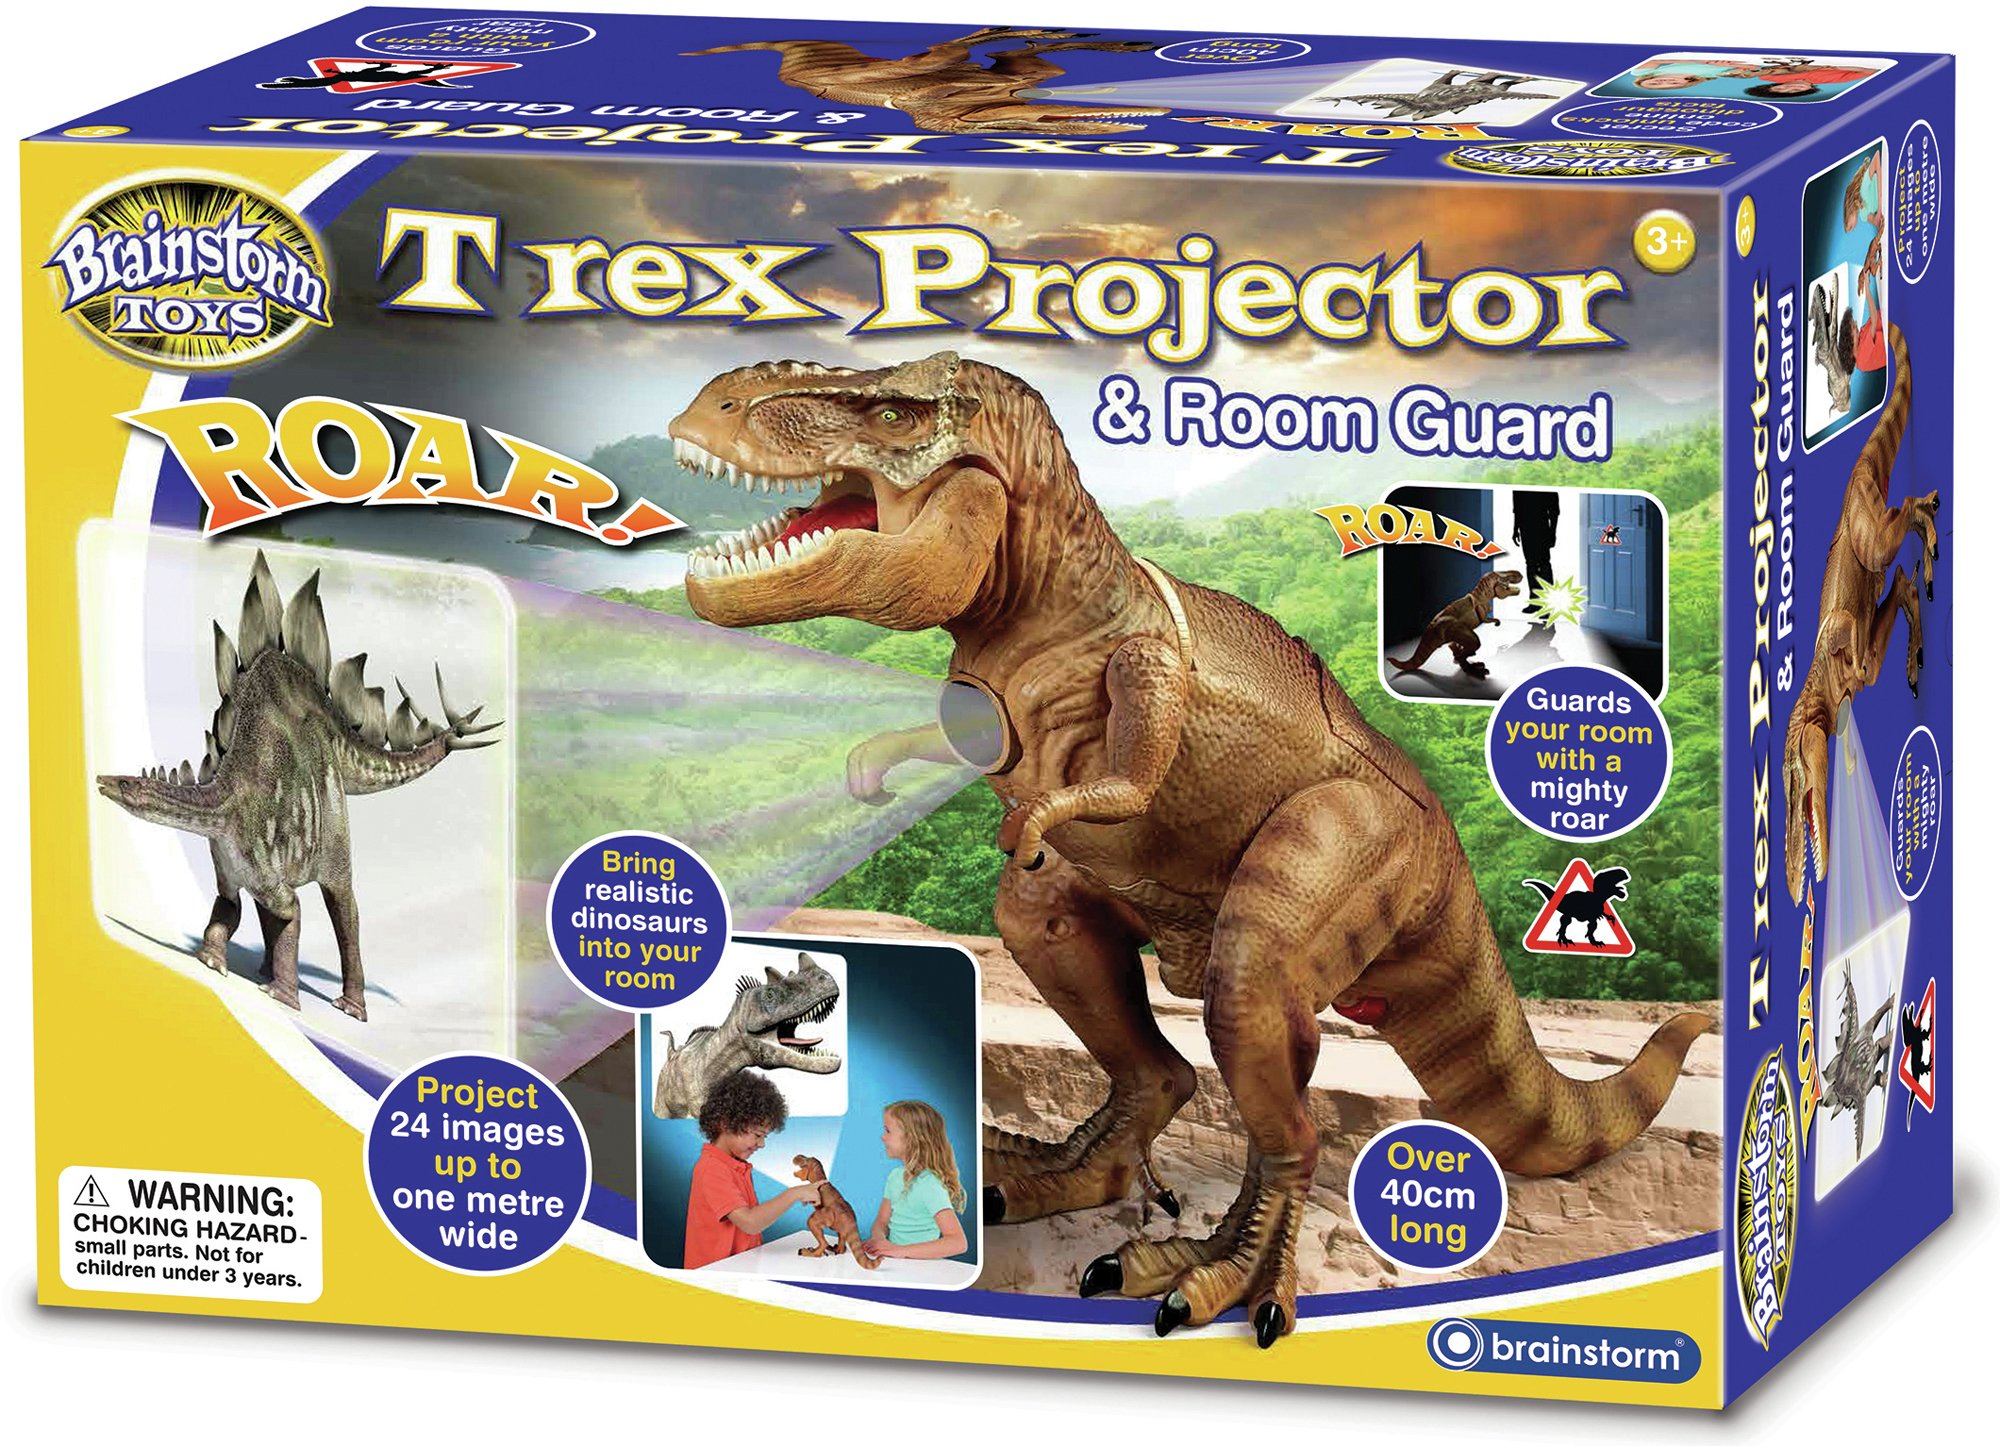 Image of Brainstorm Toys T-Rex Projector and Room Guard.